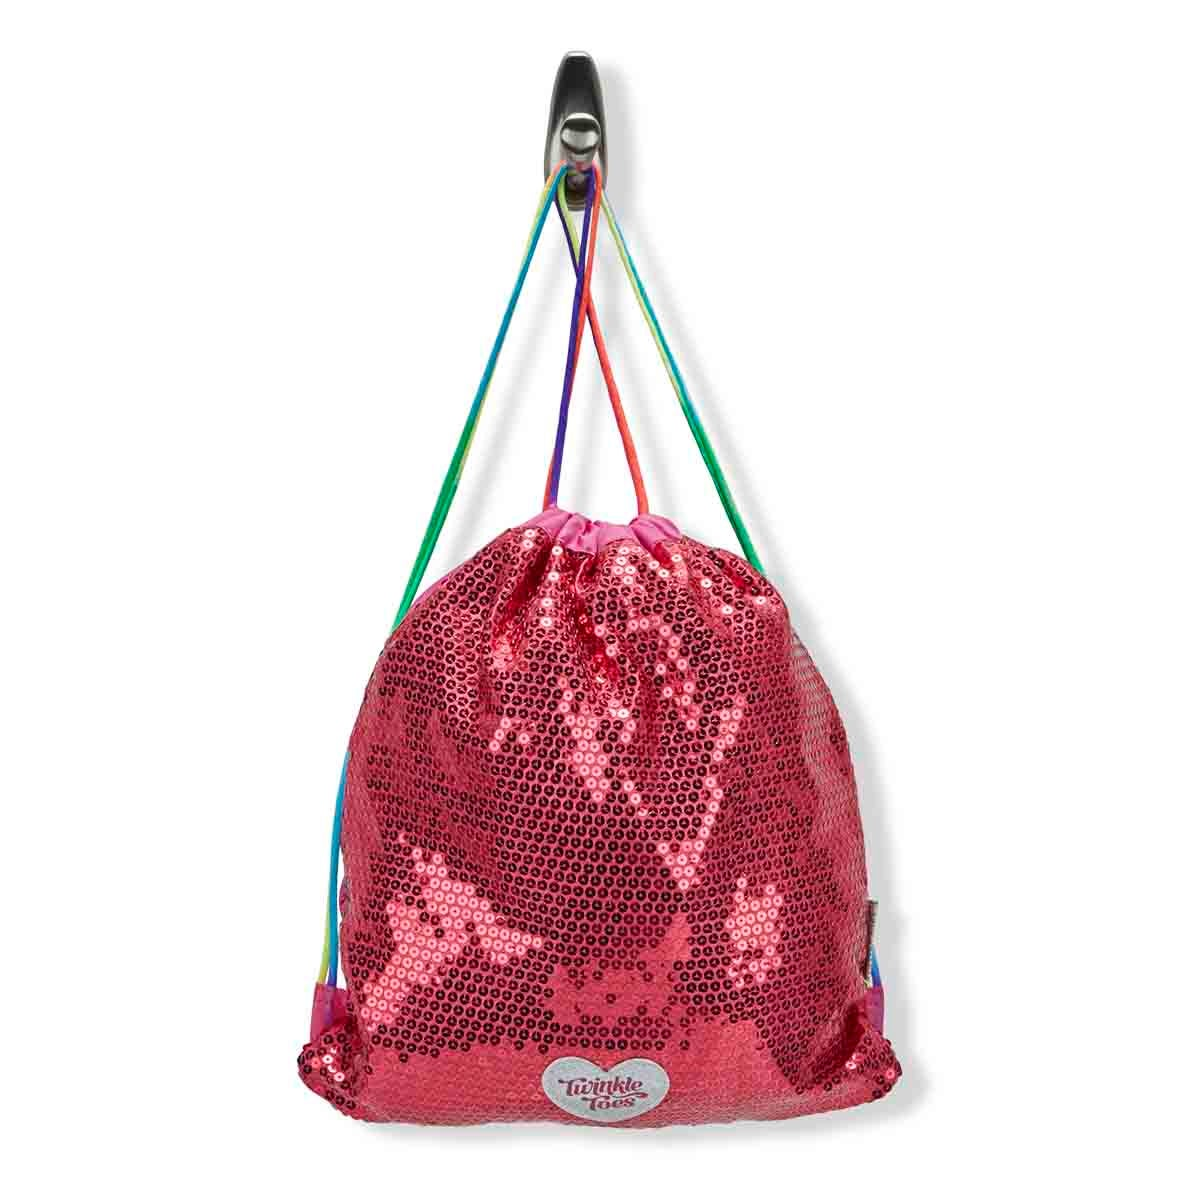 Grls TwinkleToes pnk drawstring backpack